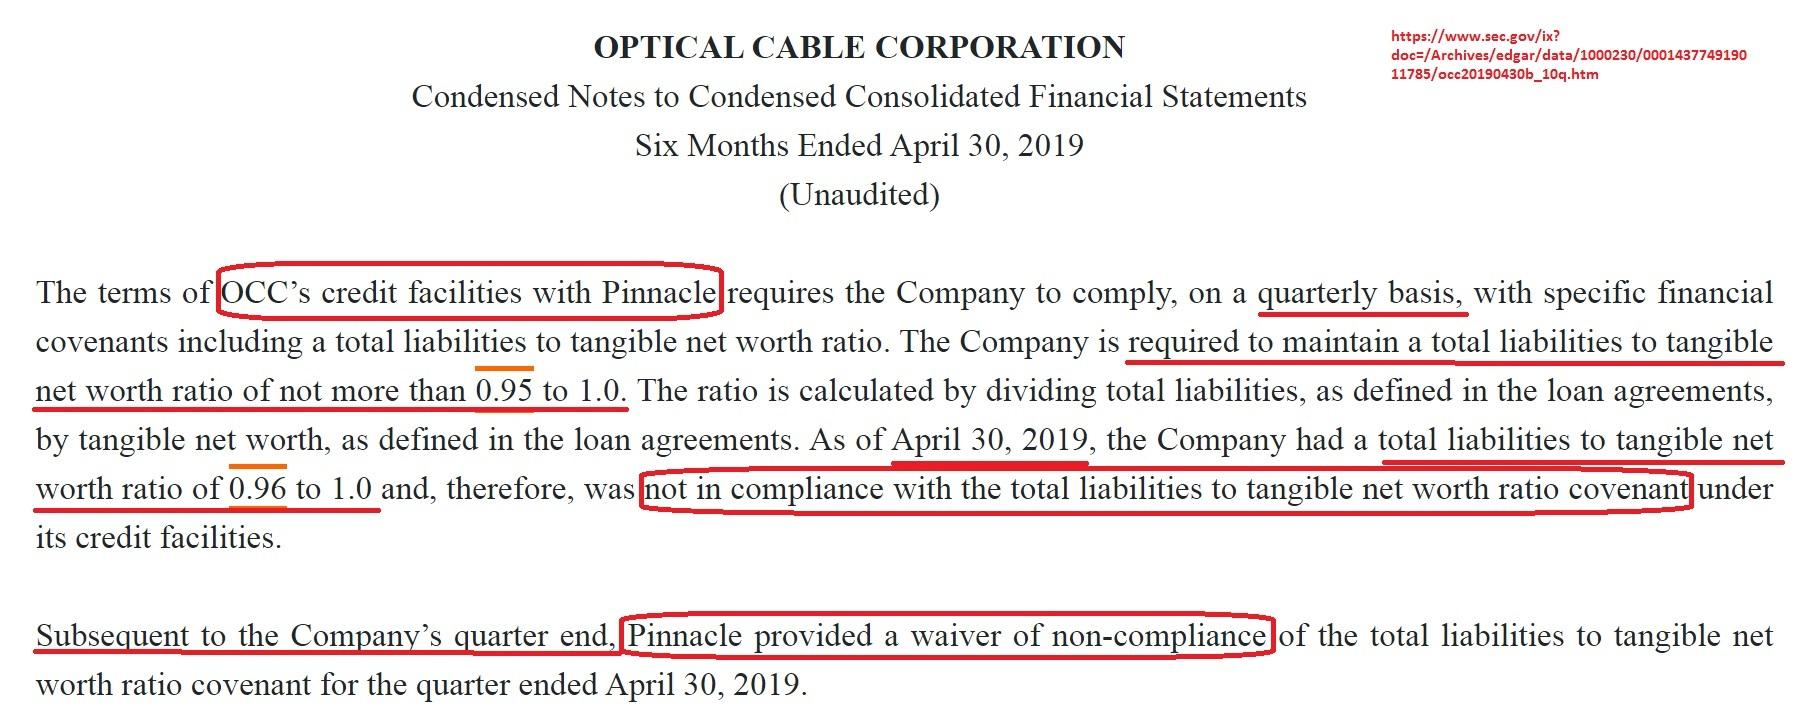 Optical Cable Corp.\'s Bank May Gain Leverage After OCC ...